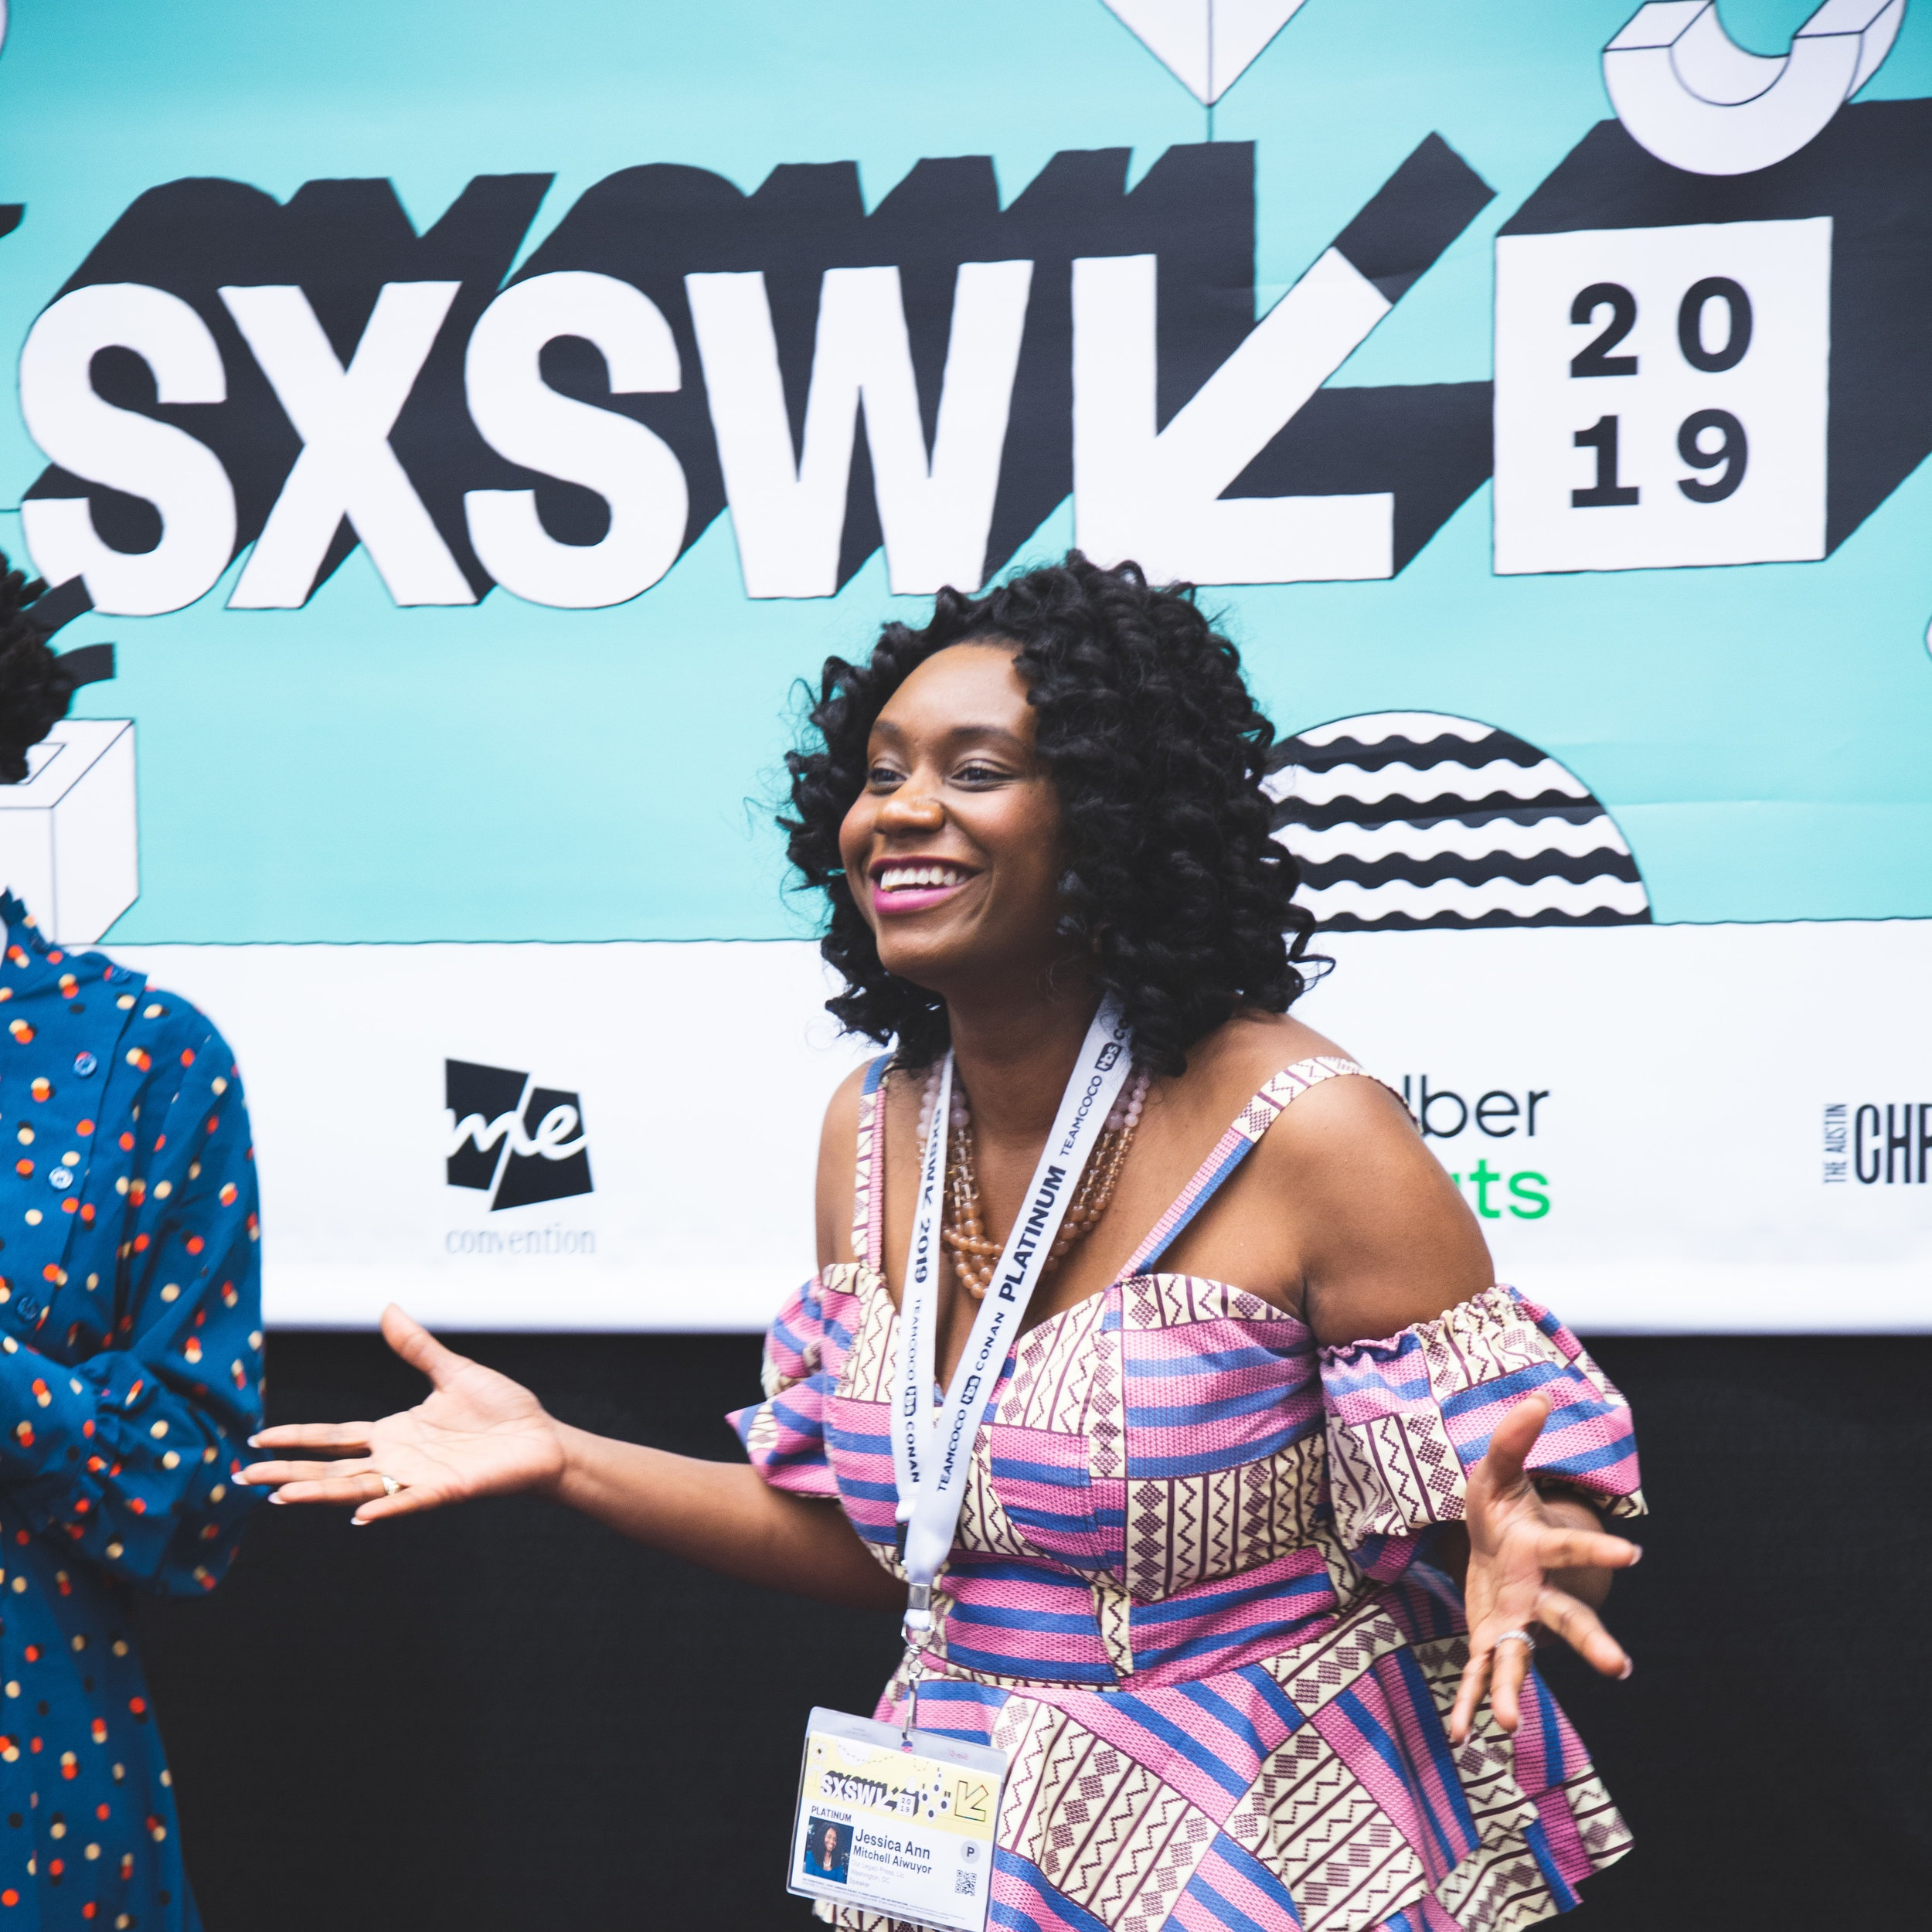 Speaking+at+SXSW.jpg